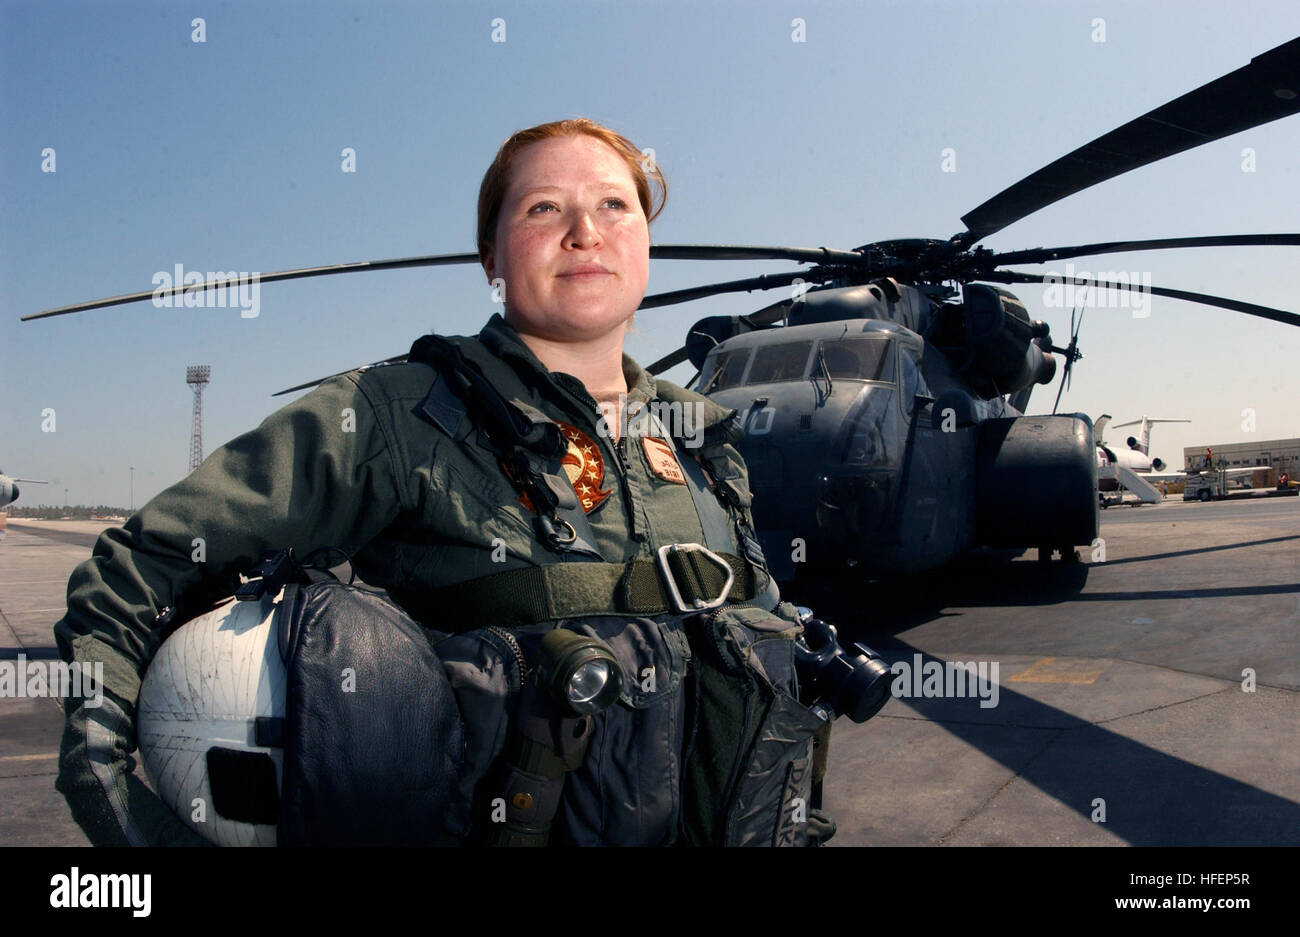 030929-N-4943L-001  Manama, Bahrain (Sept. 29, 2003) -- Lt. Bibianna Danko stands in front of an MH-53E Sea Dragon - Stock Image